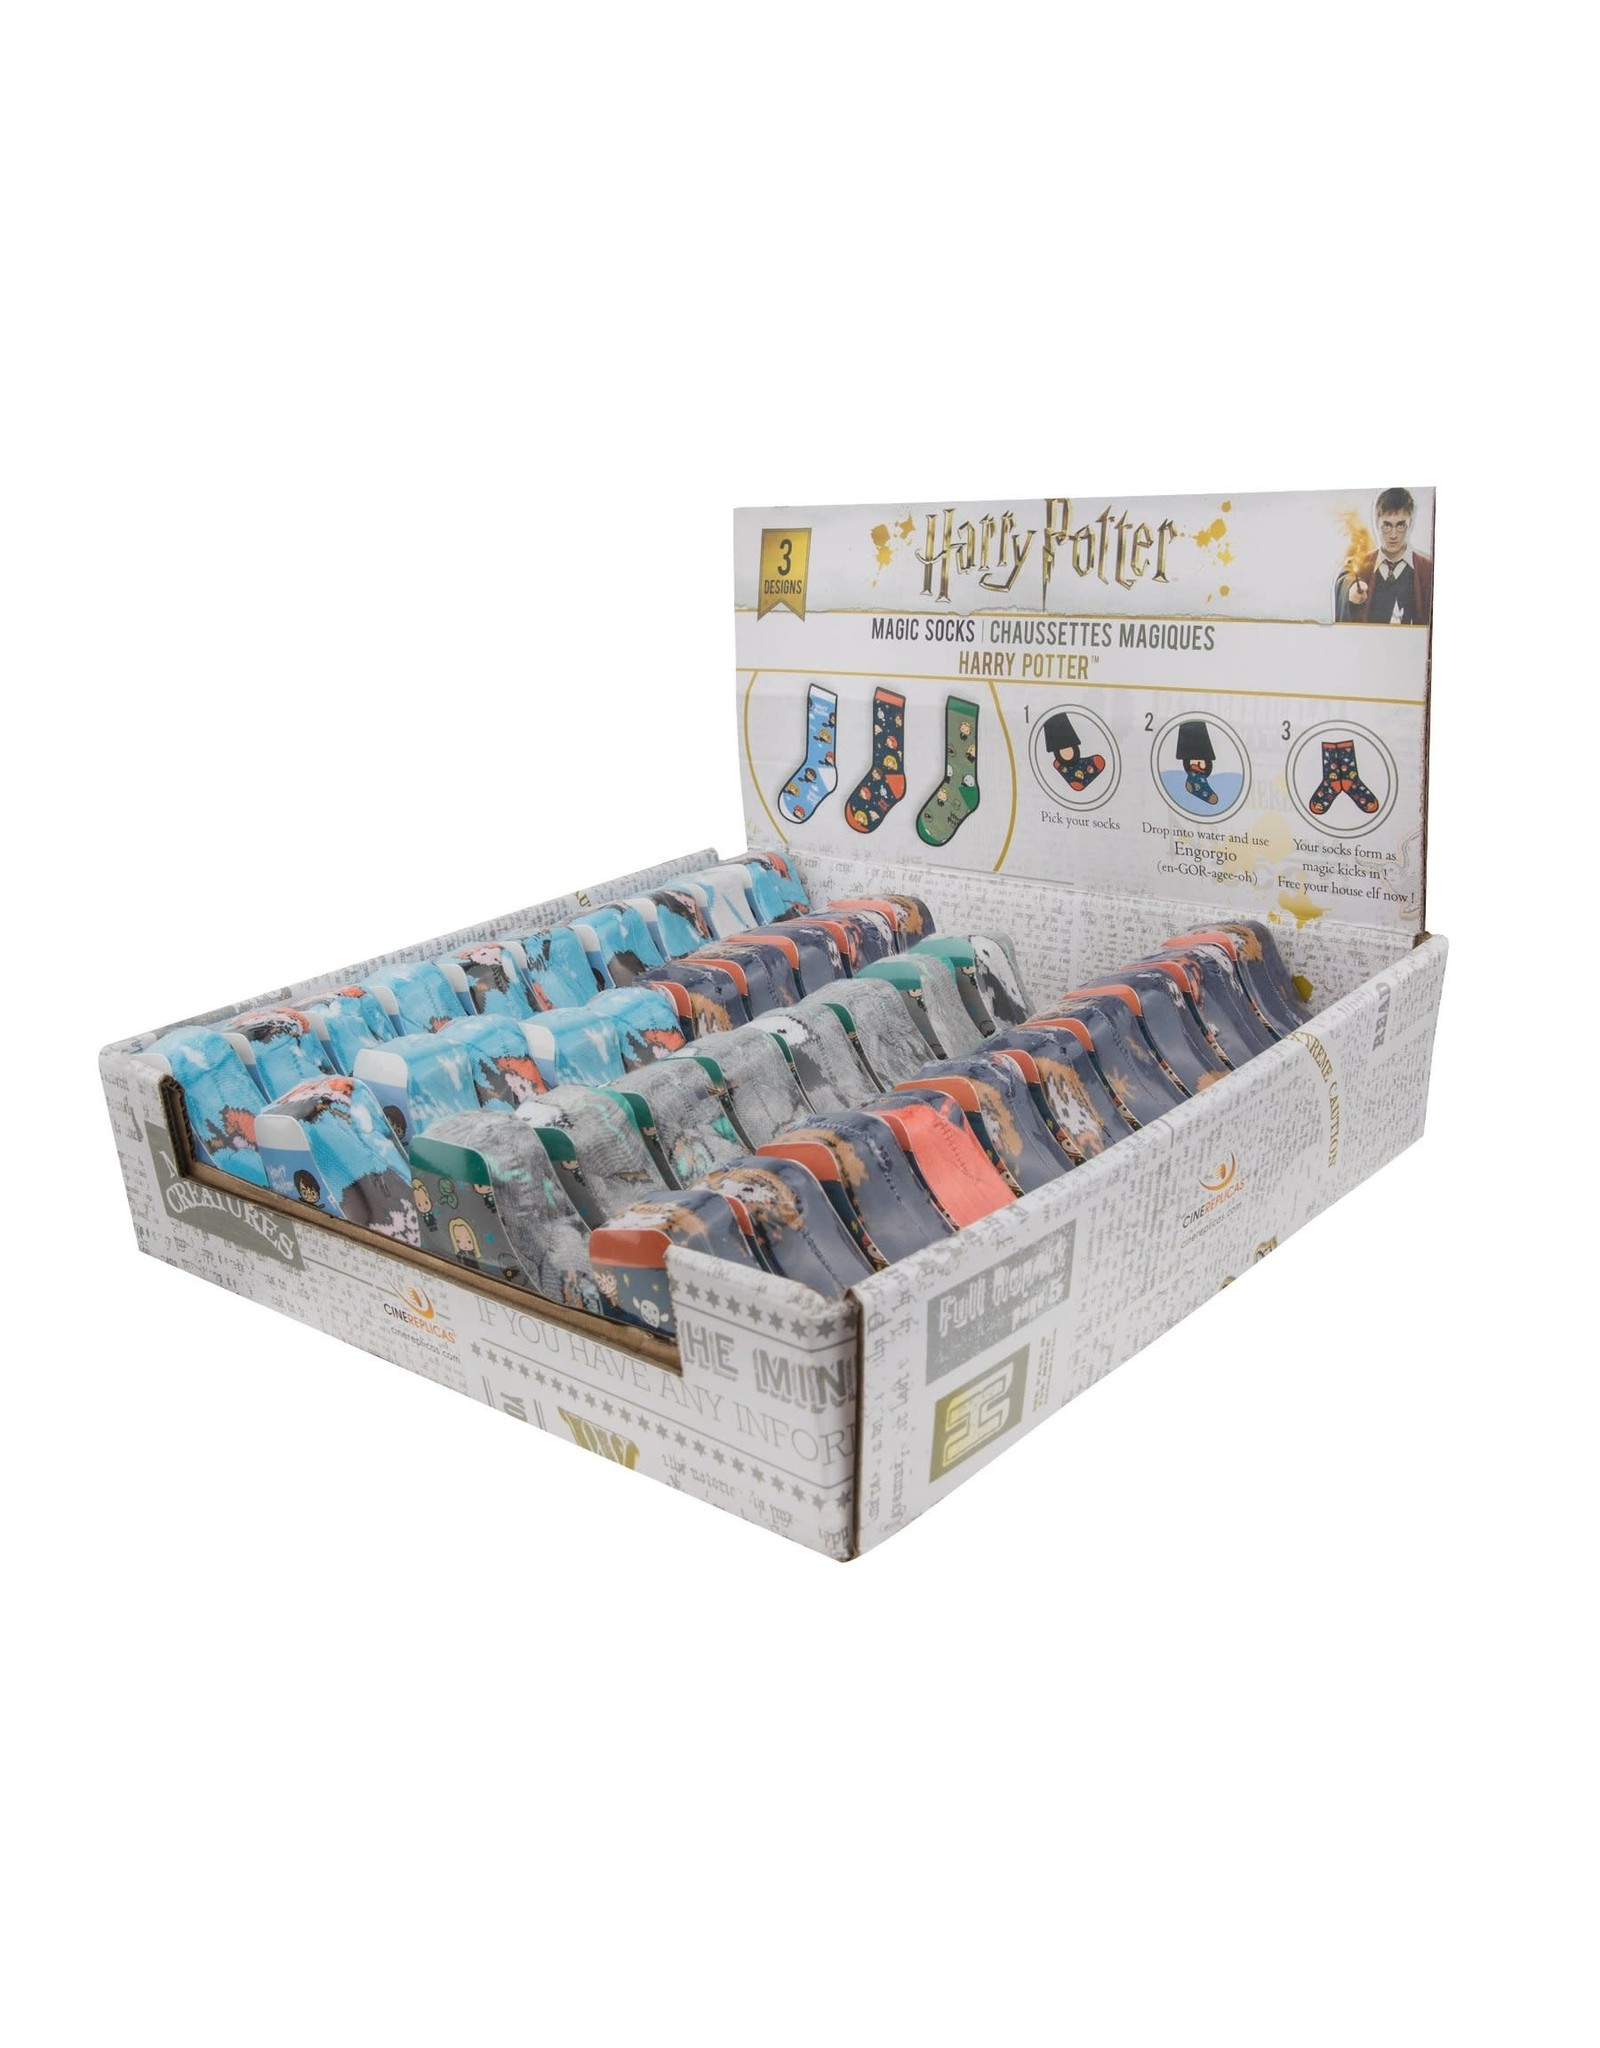 Cinereplicas HARRY POTTER Magic Socks (1pc)